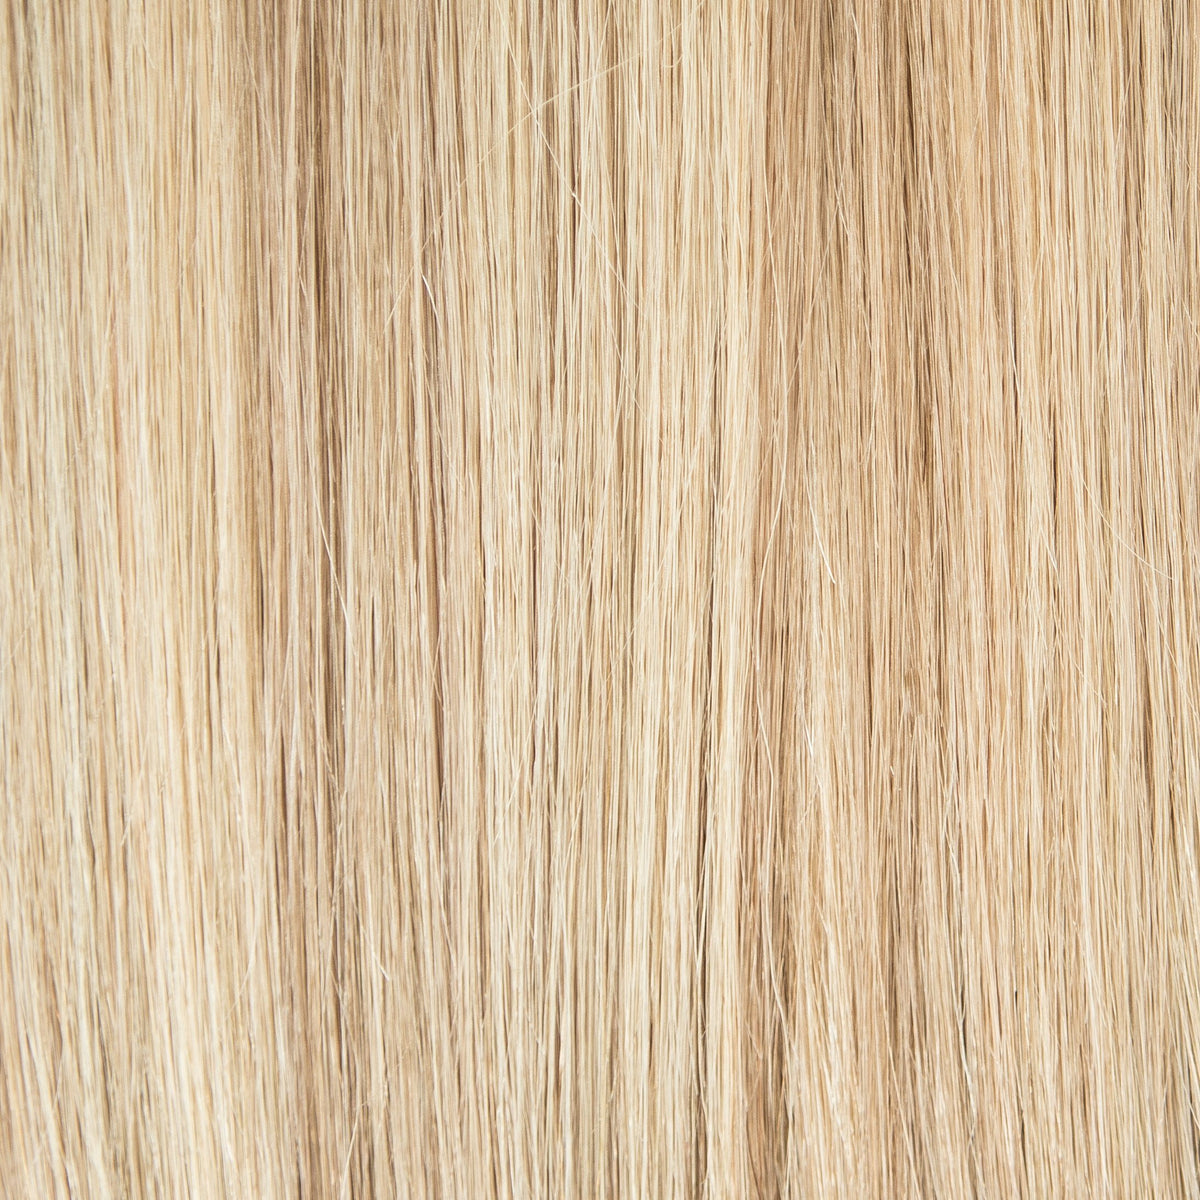 Machine_Sewn_Weft - Laced Hair Machine Sewn Weft Extensions Dimensional #14/24